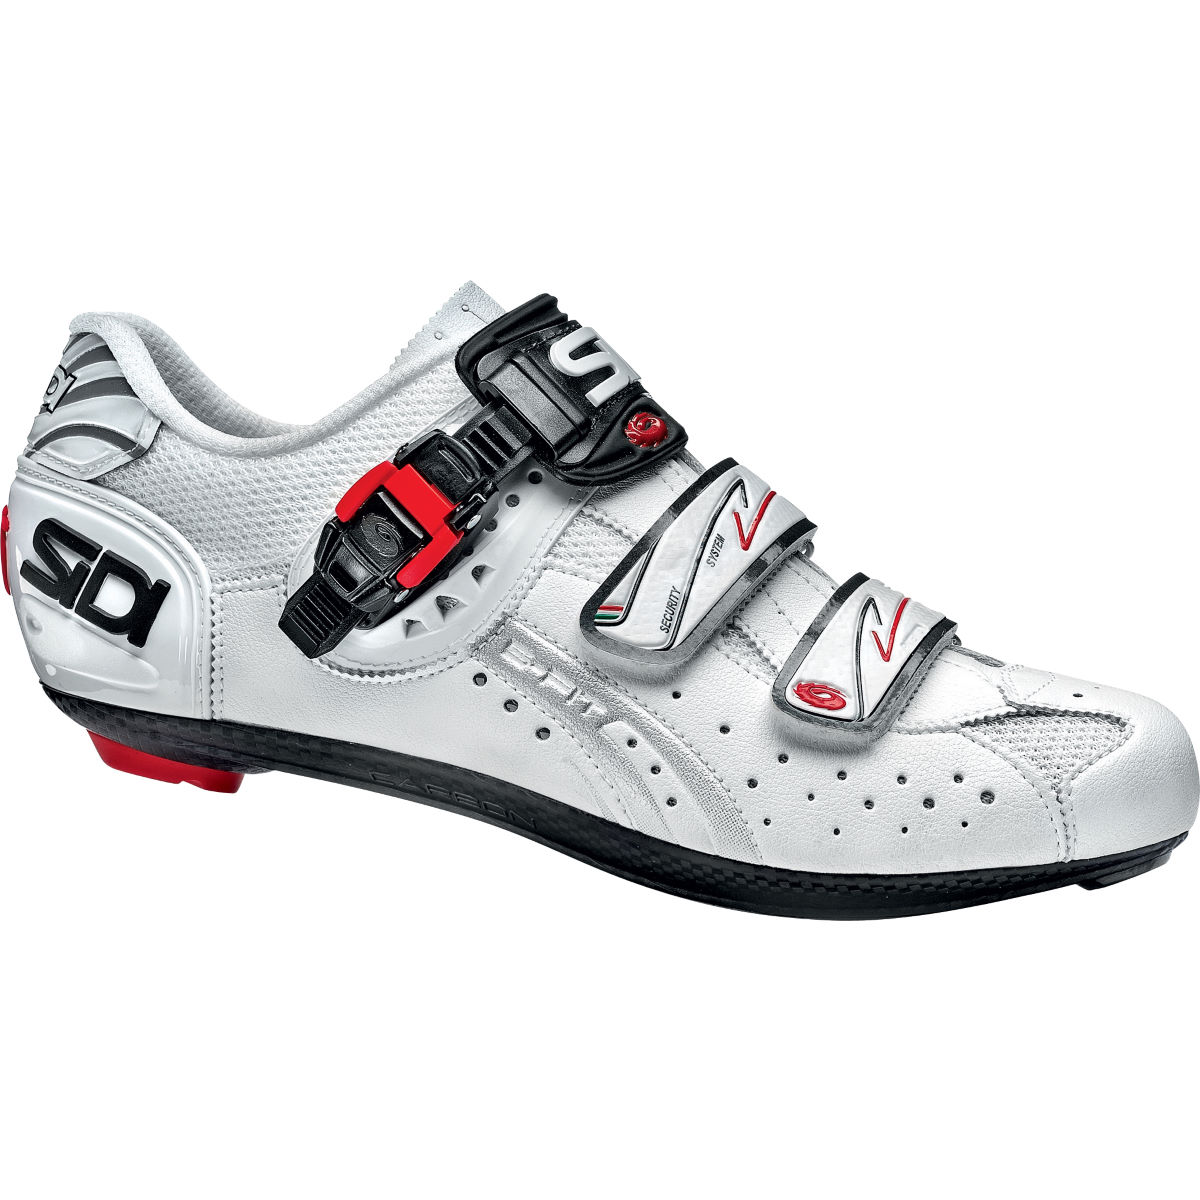 Chaussures de route Sidi Genius 5-Fit Carbon - 36 Blanc